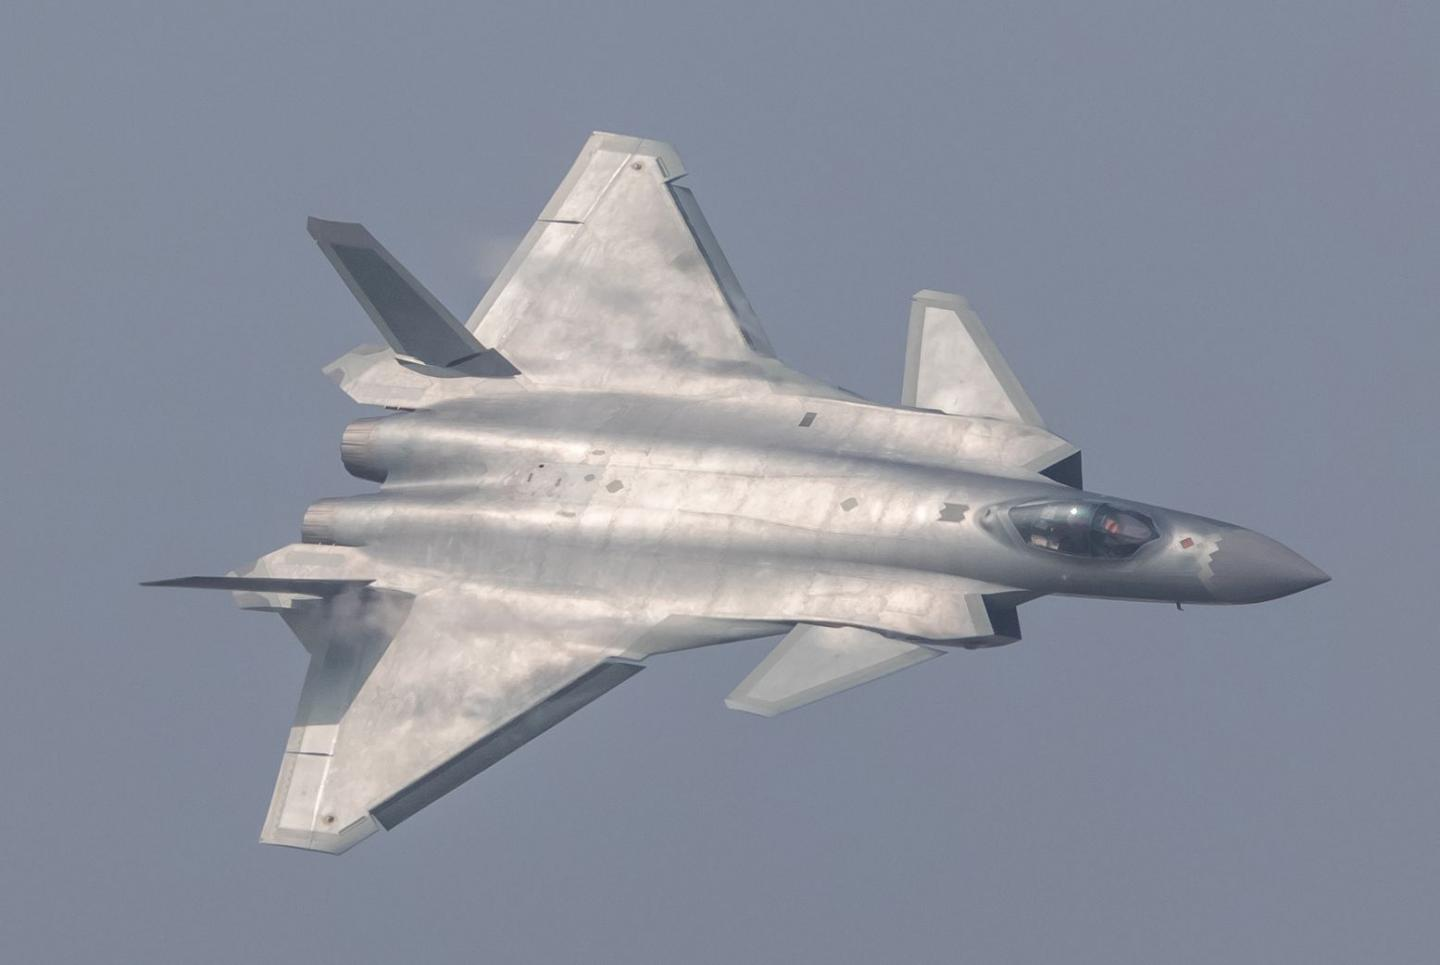 Is Chinas J-20 Stealth Fighter a Ripoff of Russian Technology?